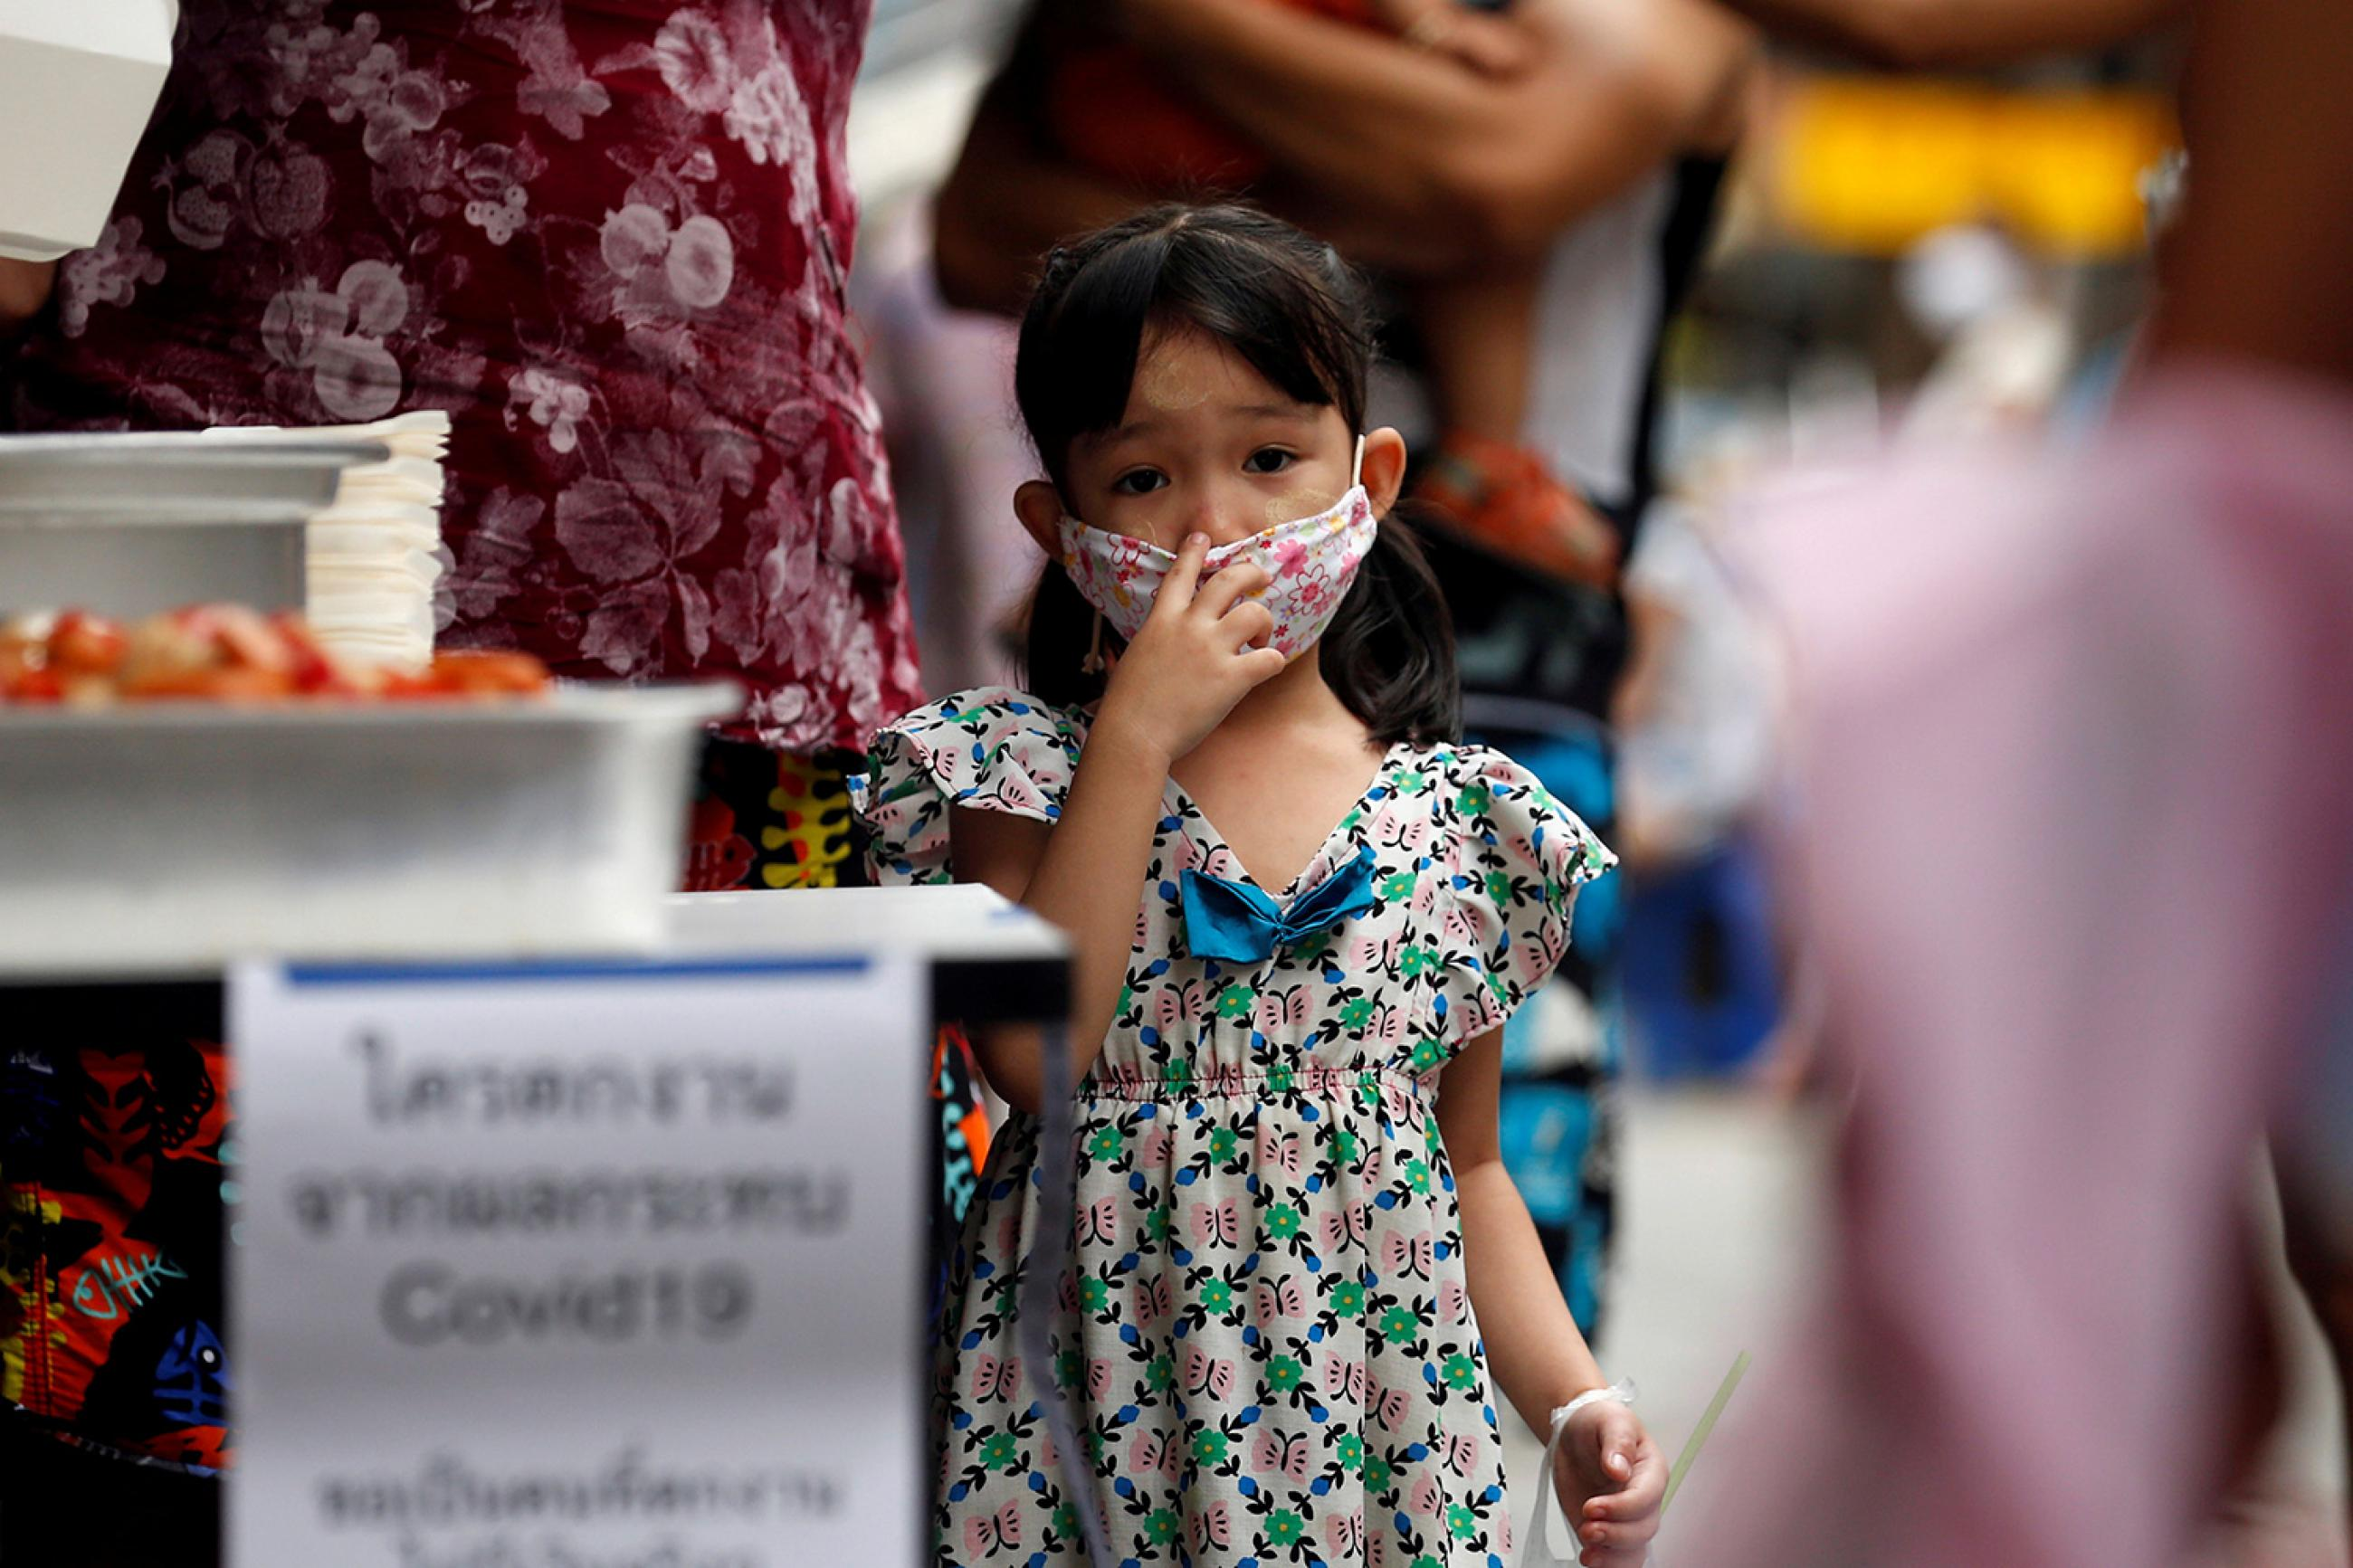 A girl from a migrant worker family that came to Thailand from Myanmar and lost their jobs due to COVID-19, lines up for free food in Bangkok, Thailand, on April 23, 2020. The photo shows a small girl wearing a facemask looking at the camera. REUTERS/Soe Zeya Tun